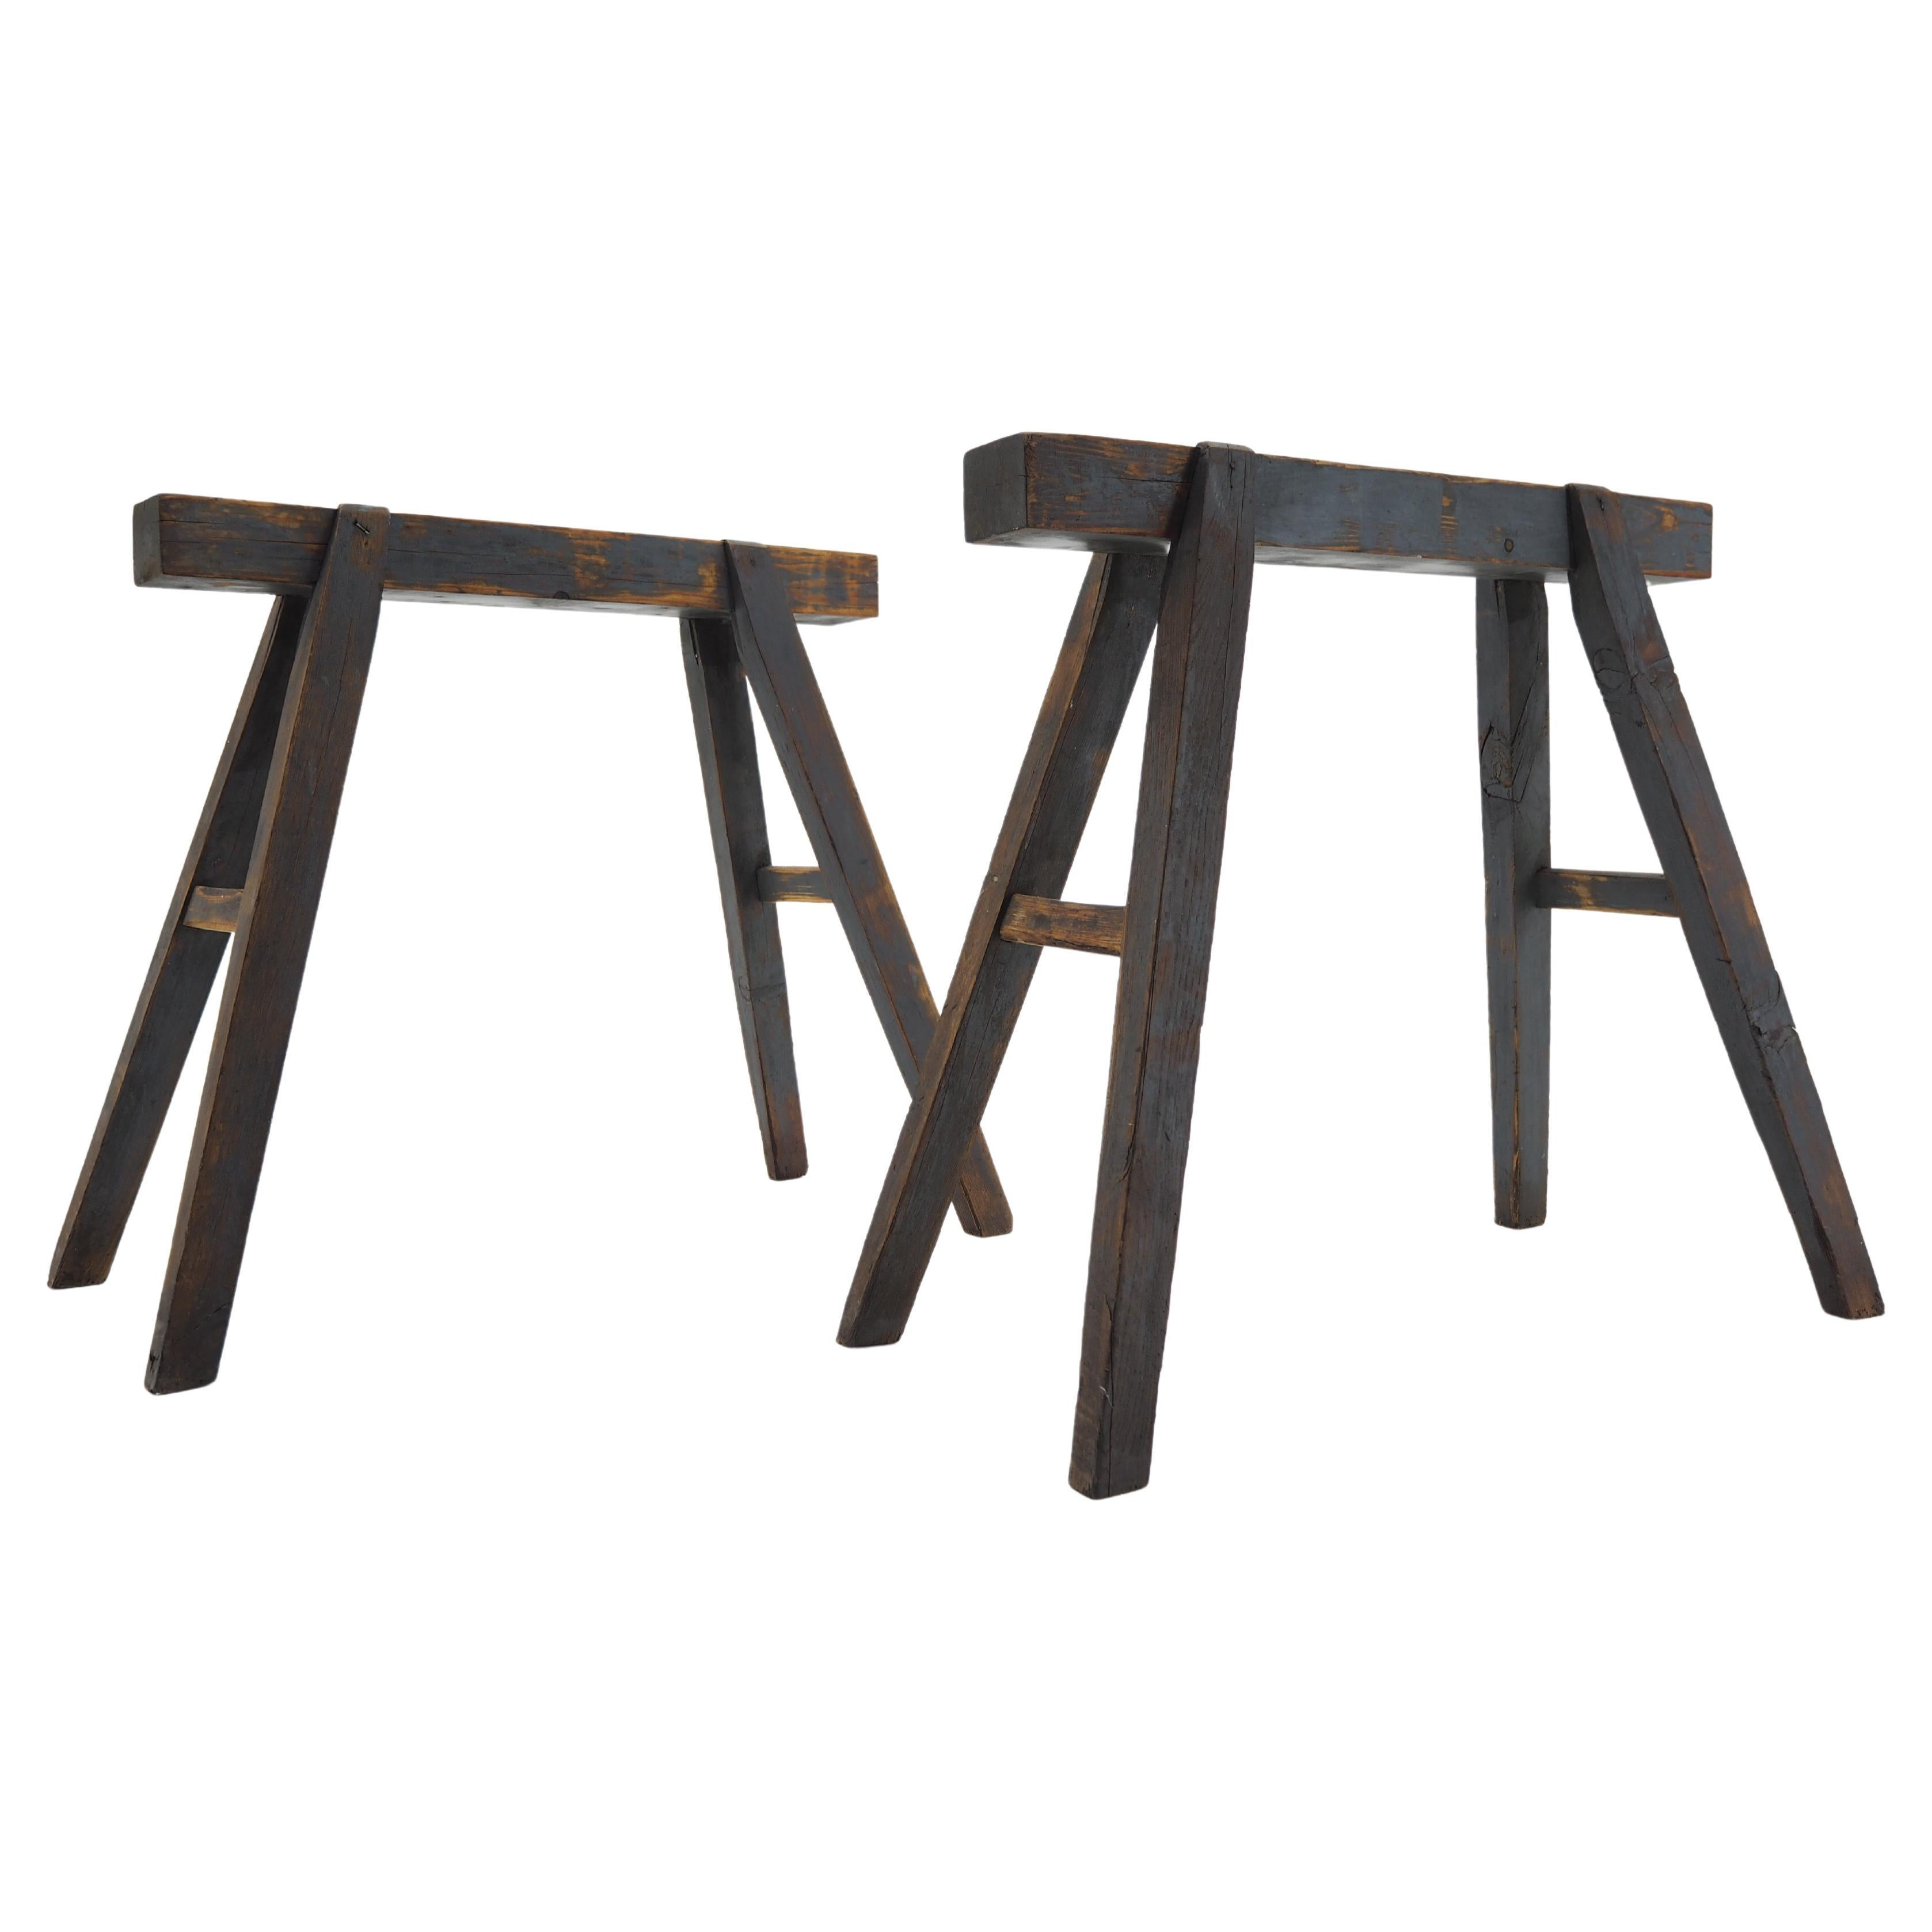 Pair of Industrial Trestle Table Bases, Early 20th Century